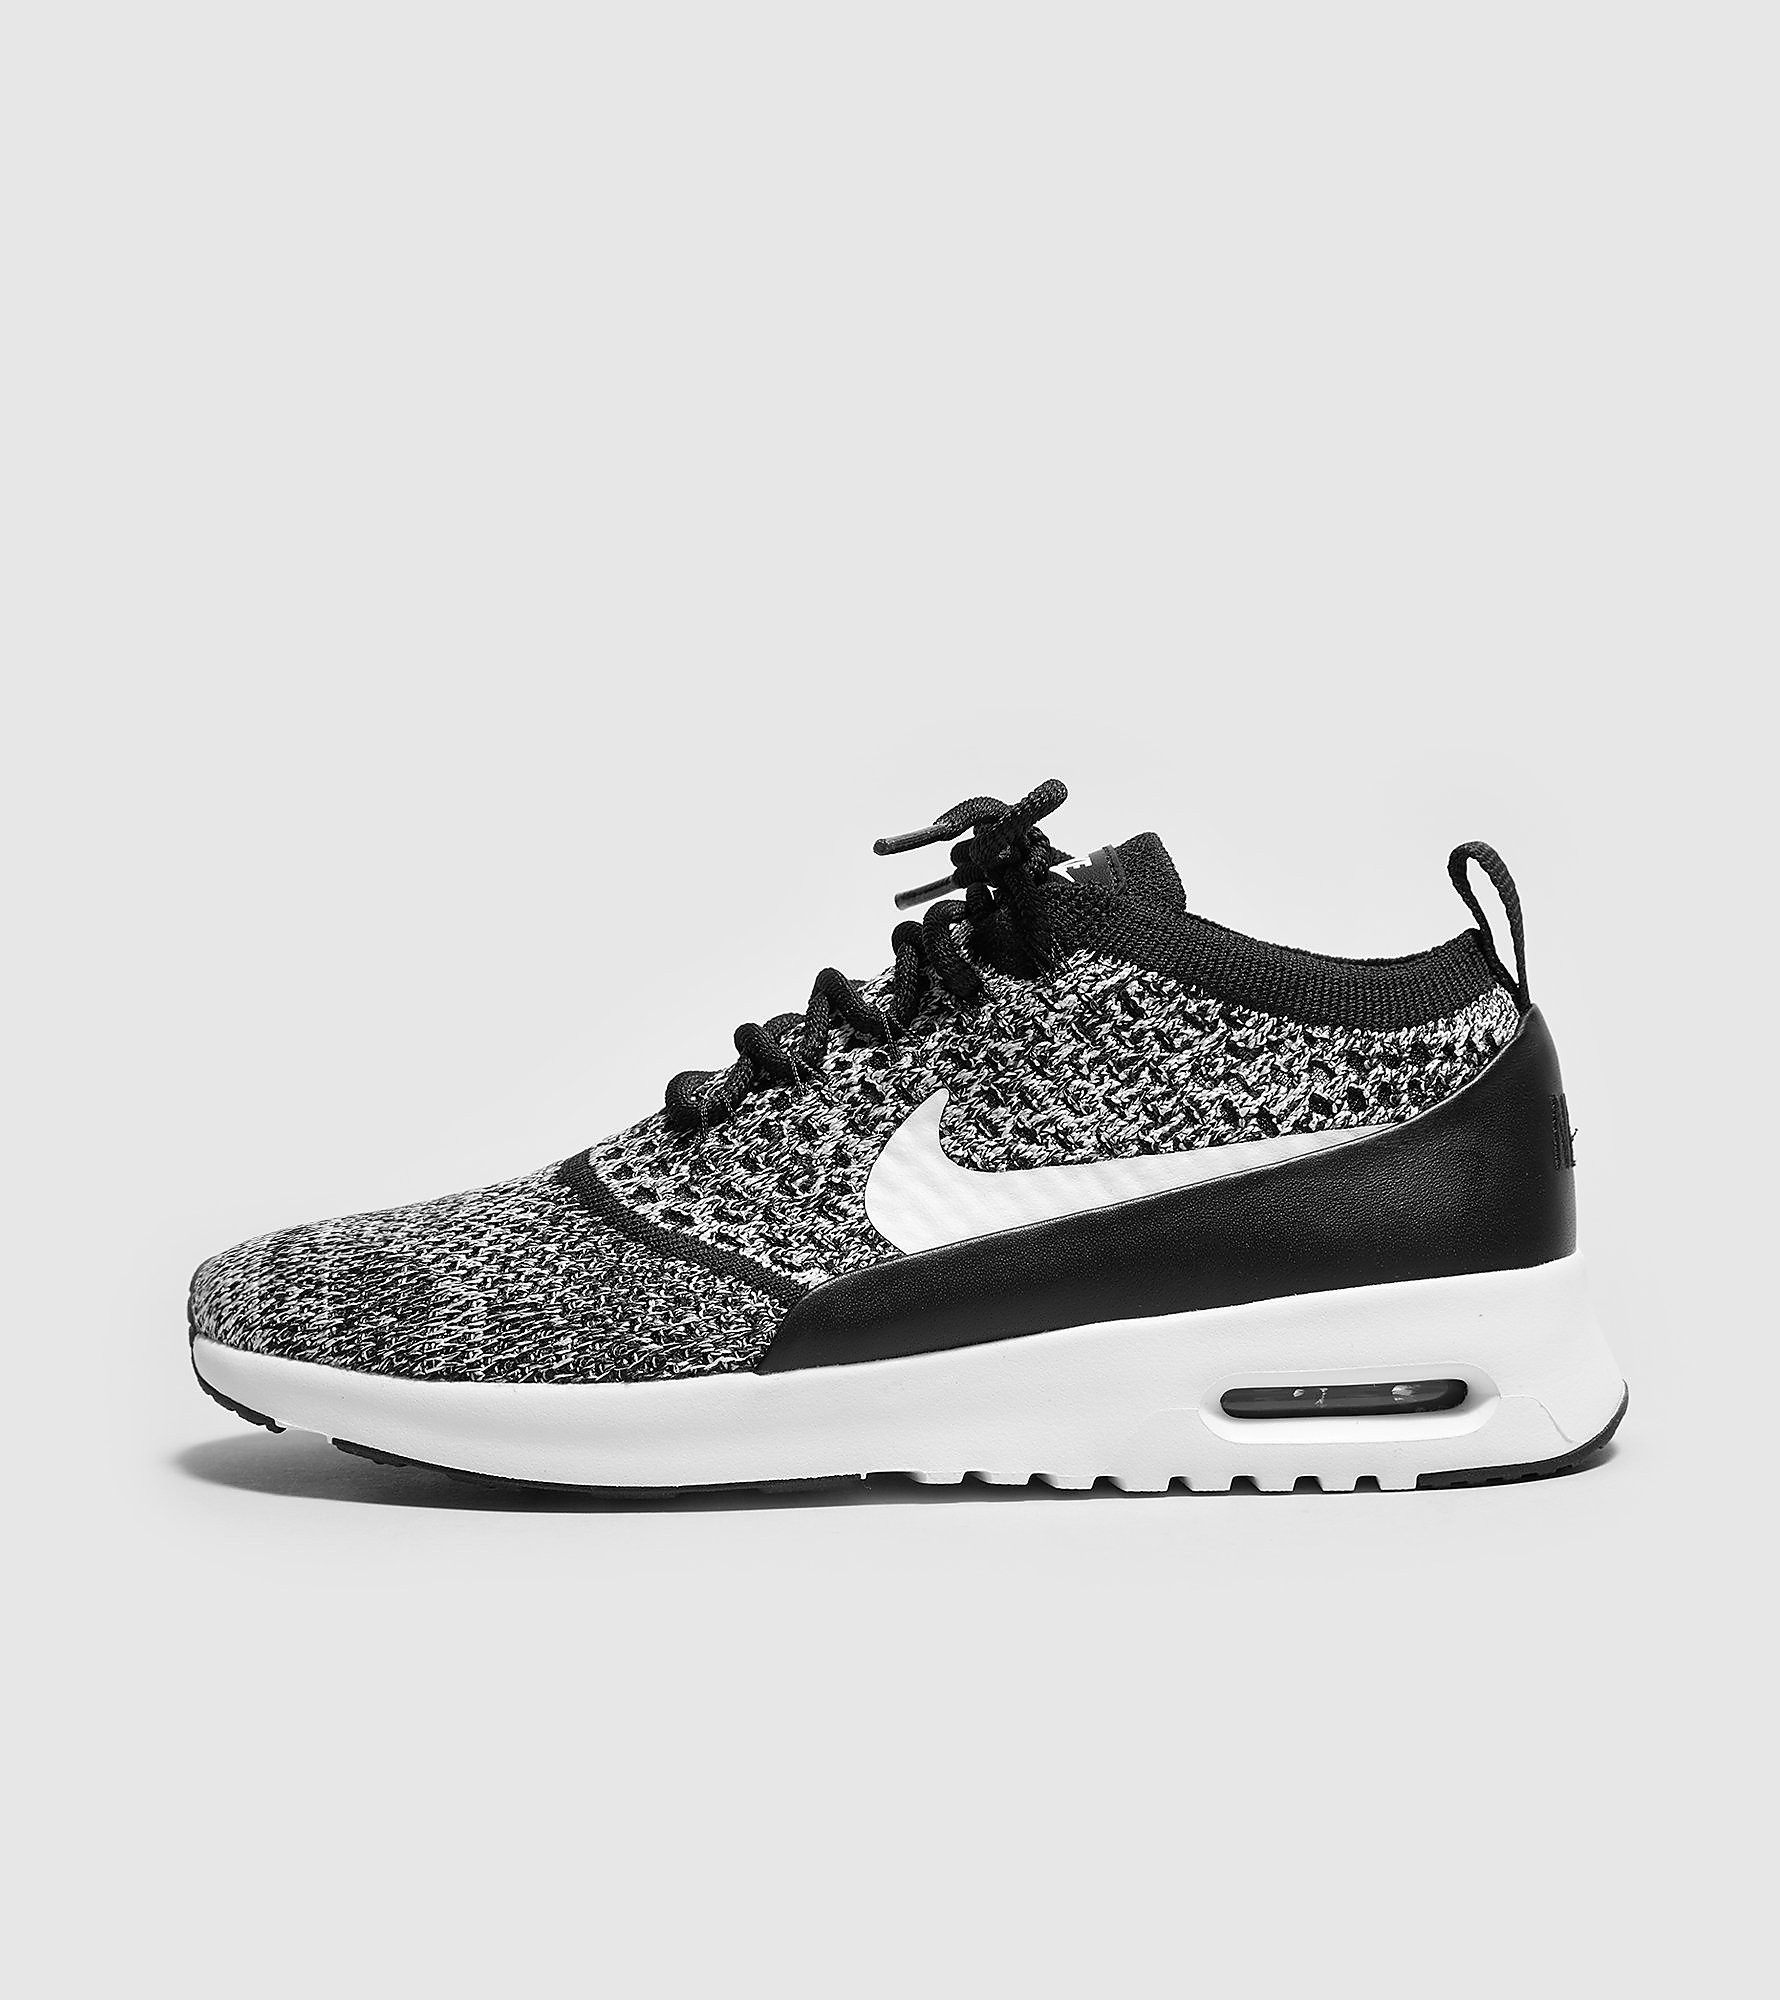 Nike Air Max Thea Flyknit Women's